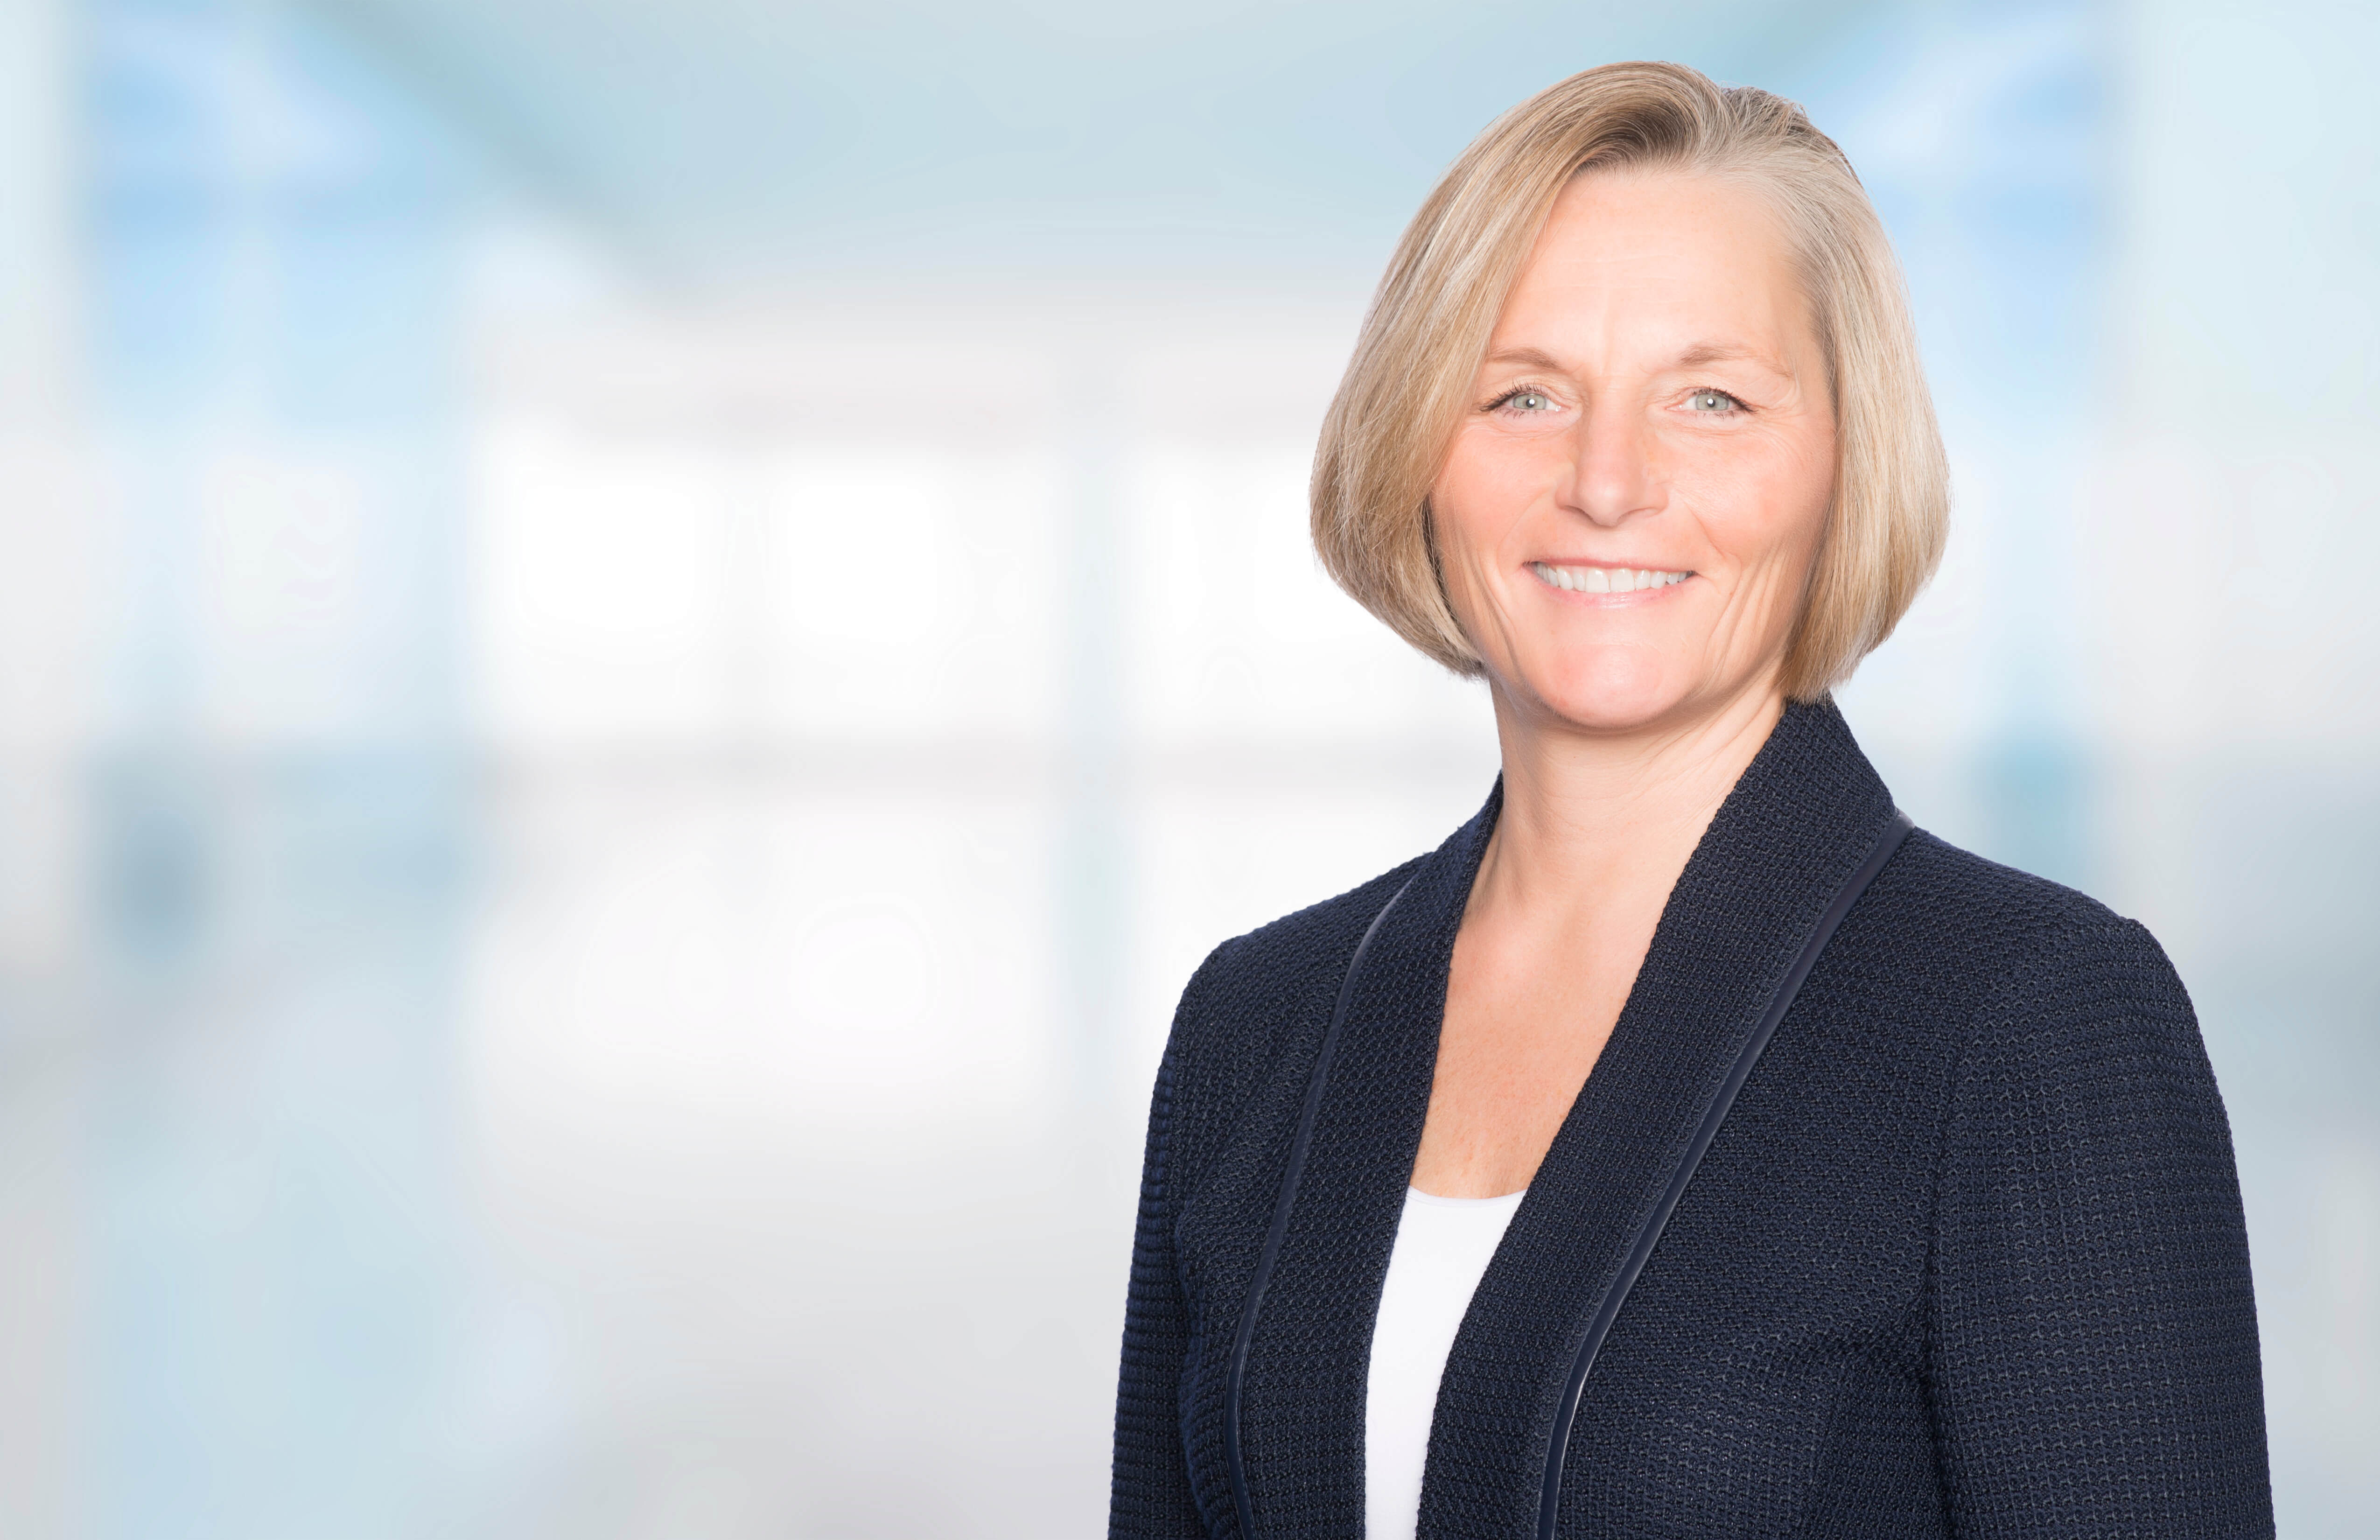 Cerner's Chief People Officer Announces Retirement After 24 Years